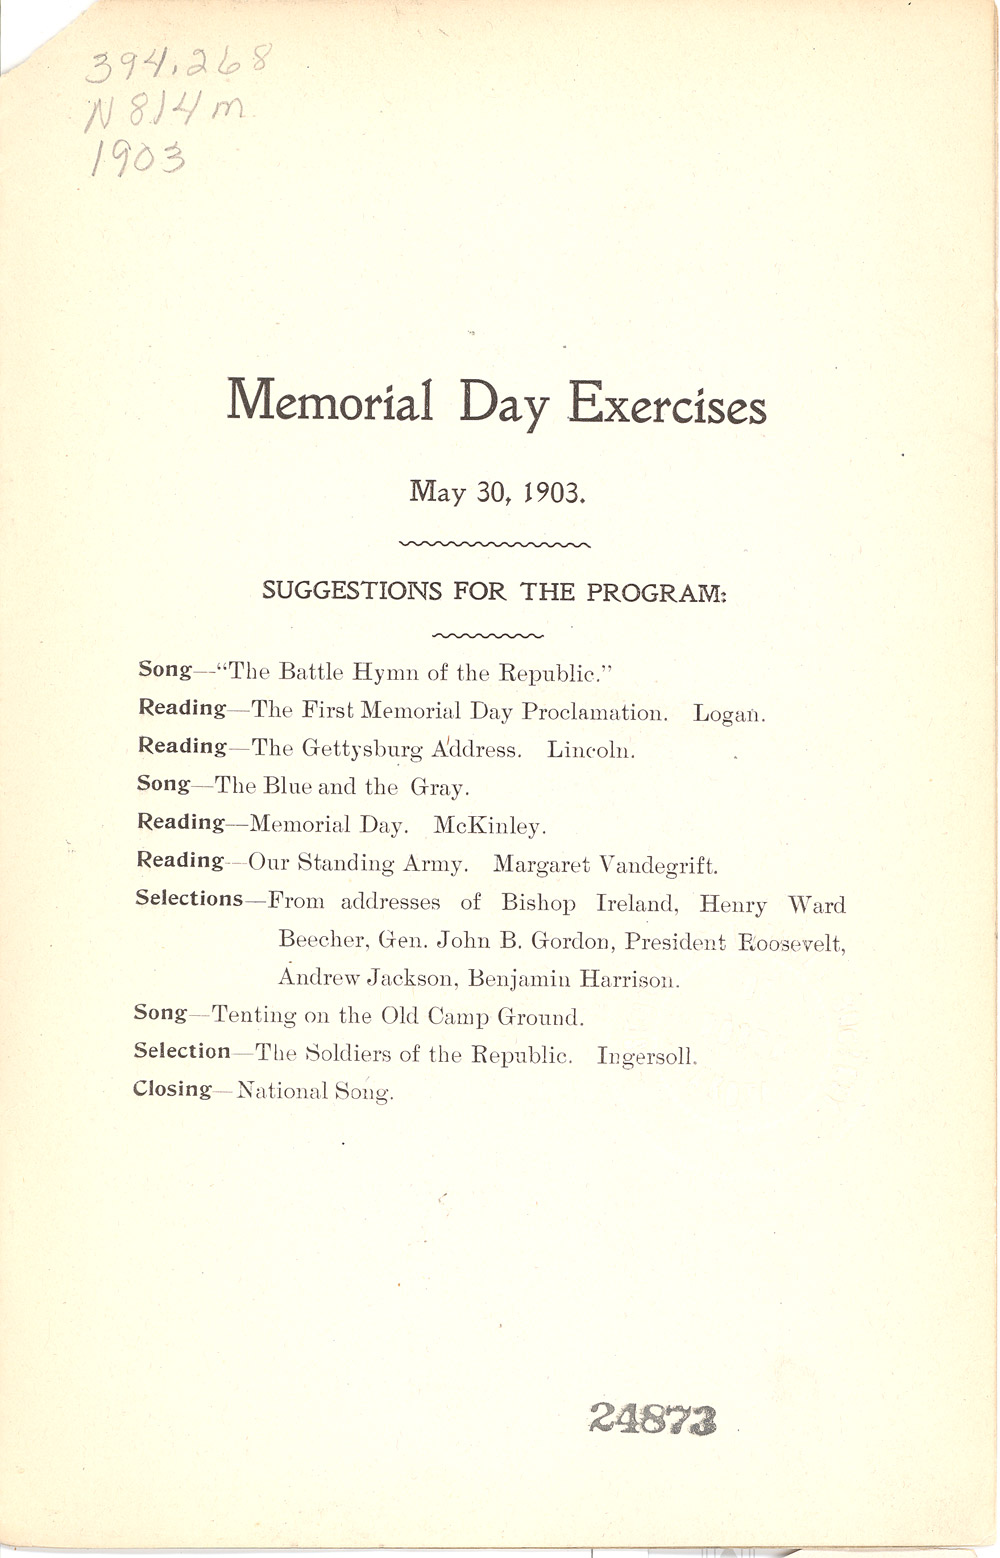 These pages are from the Memorial Day Program booklet of 1903. The North Dakota Superintendent of Public Instruction sent a copy of this booklet to every school. There were also programs for George Washington's birthday, Abraham Lincoln's Birthday, and Arbor Day.